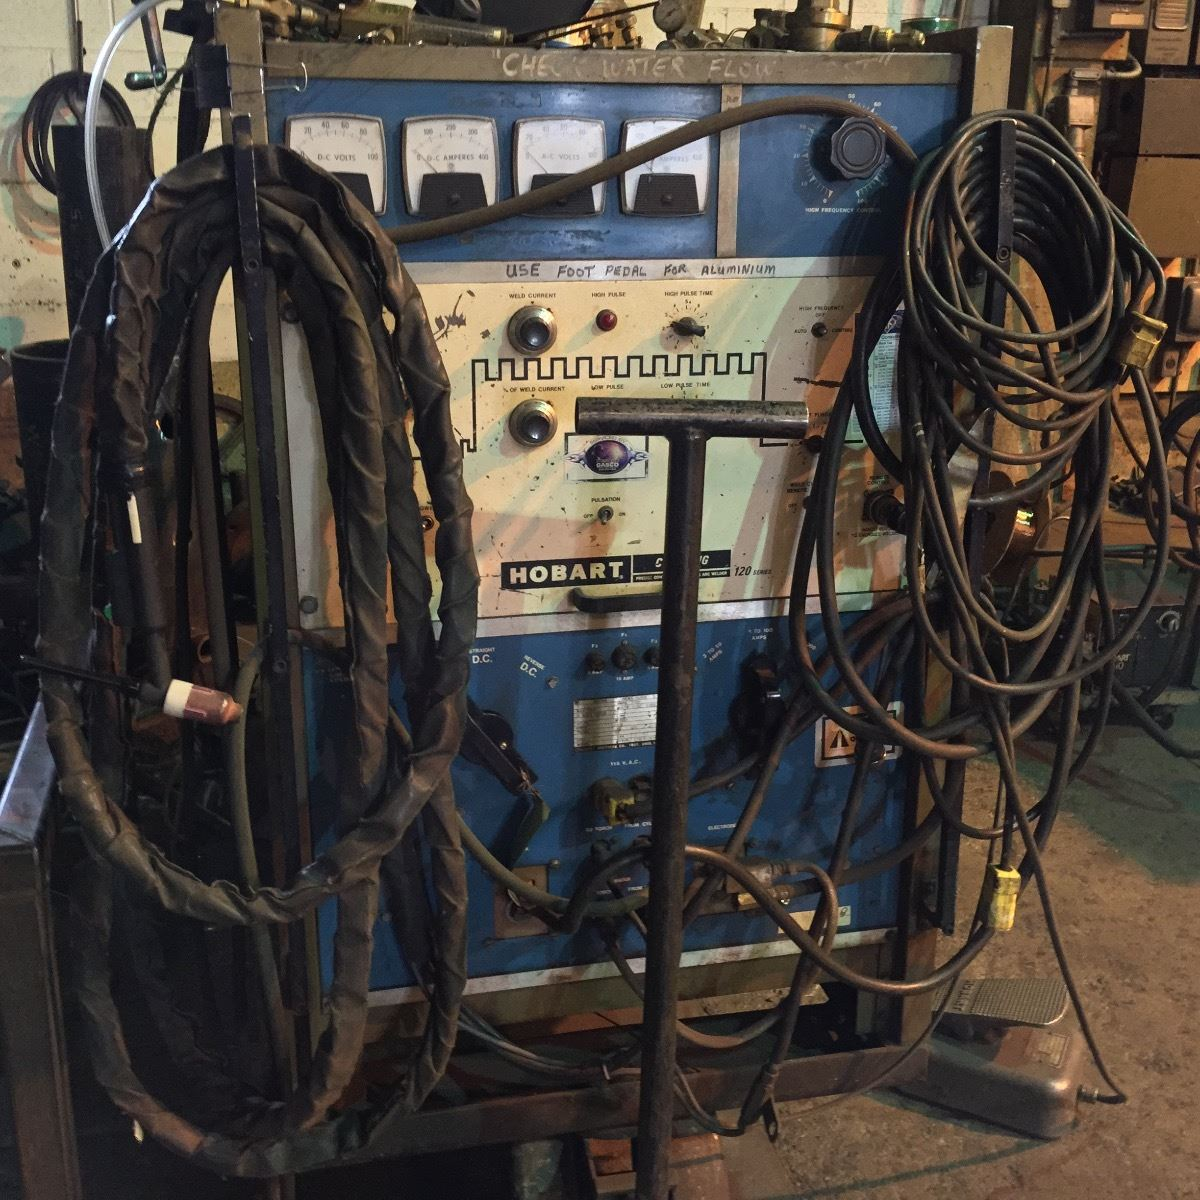 hobart cyber tig model c7 300 tig arc welder w foot controls and cables rh liveauctionworld com TIG Welder Cyberweld TIG Welder Cyberweld